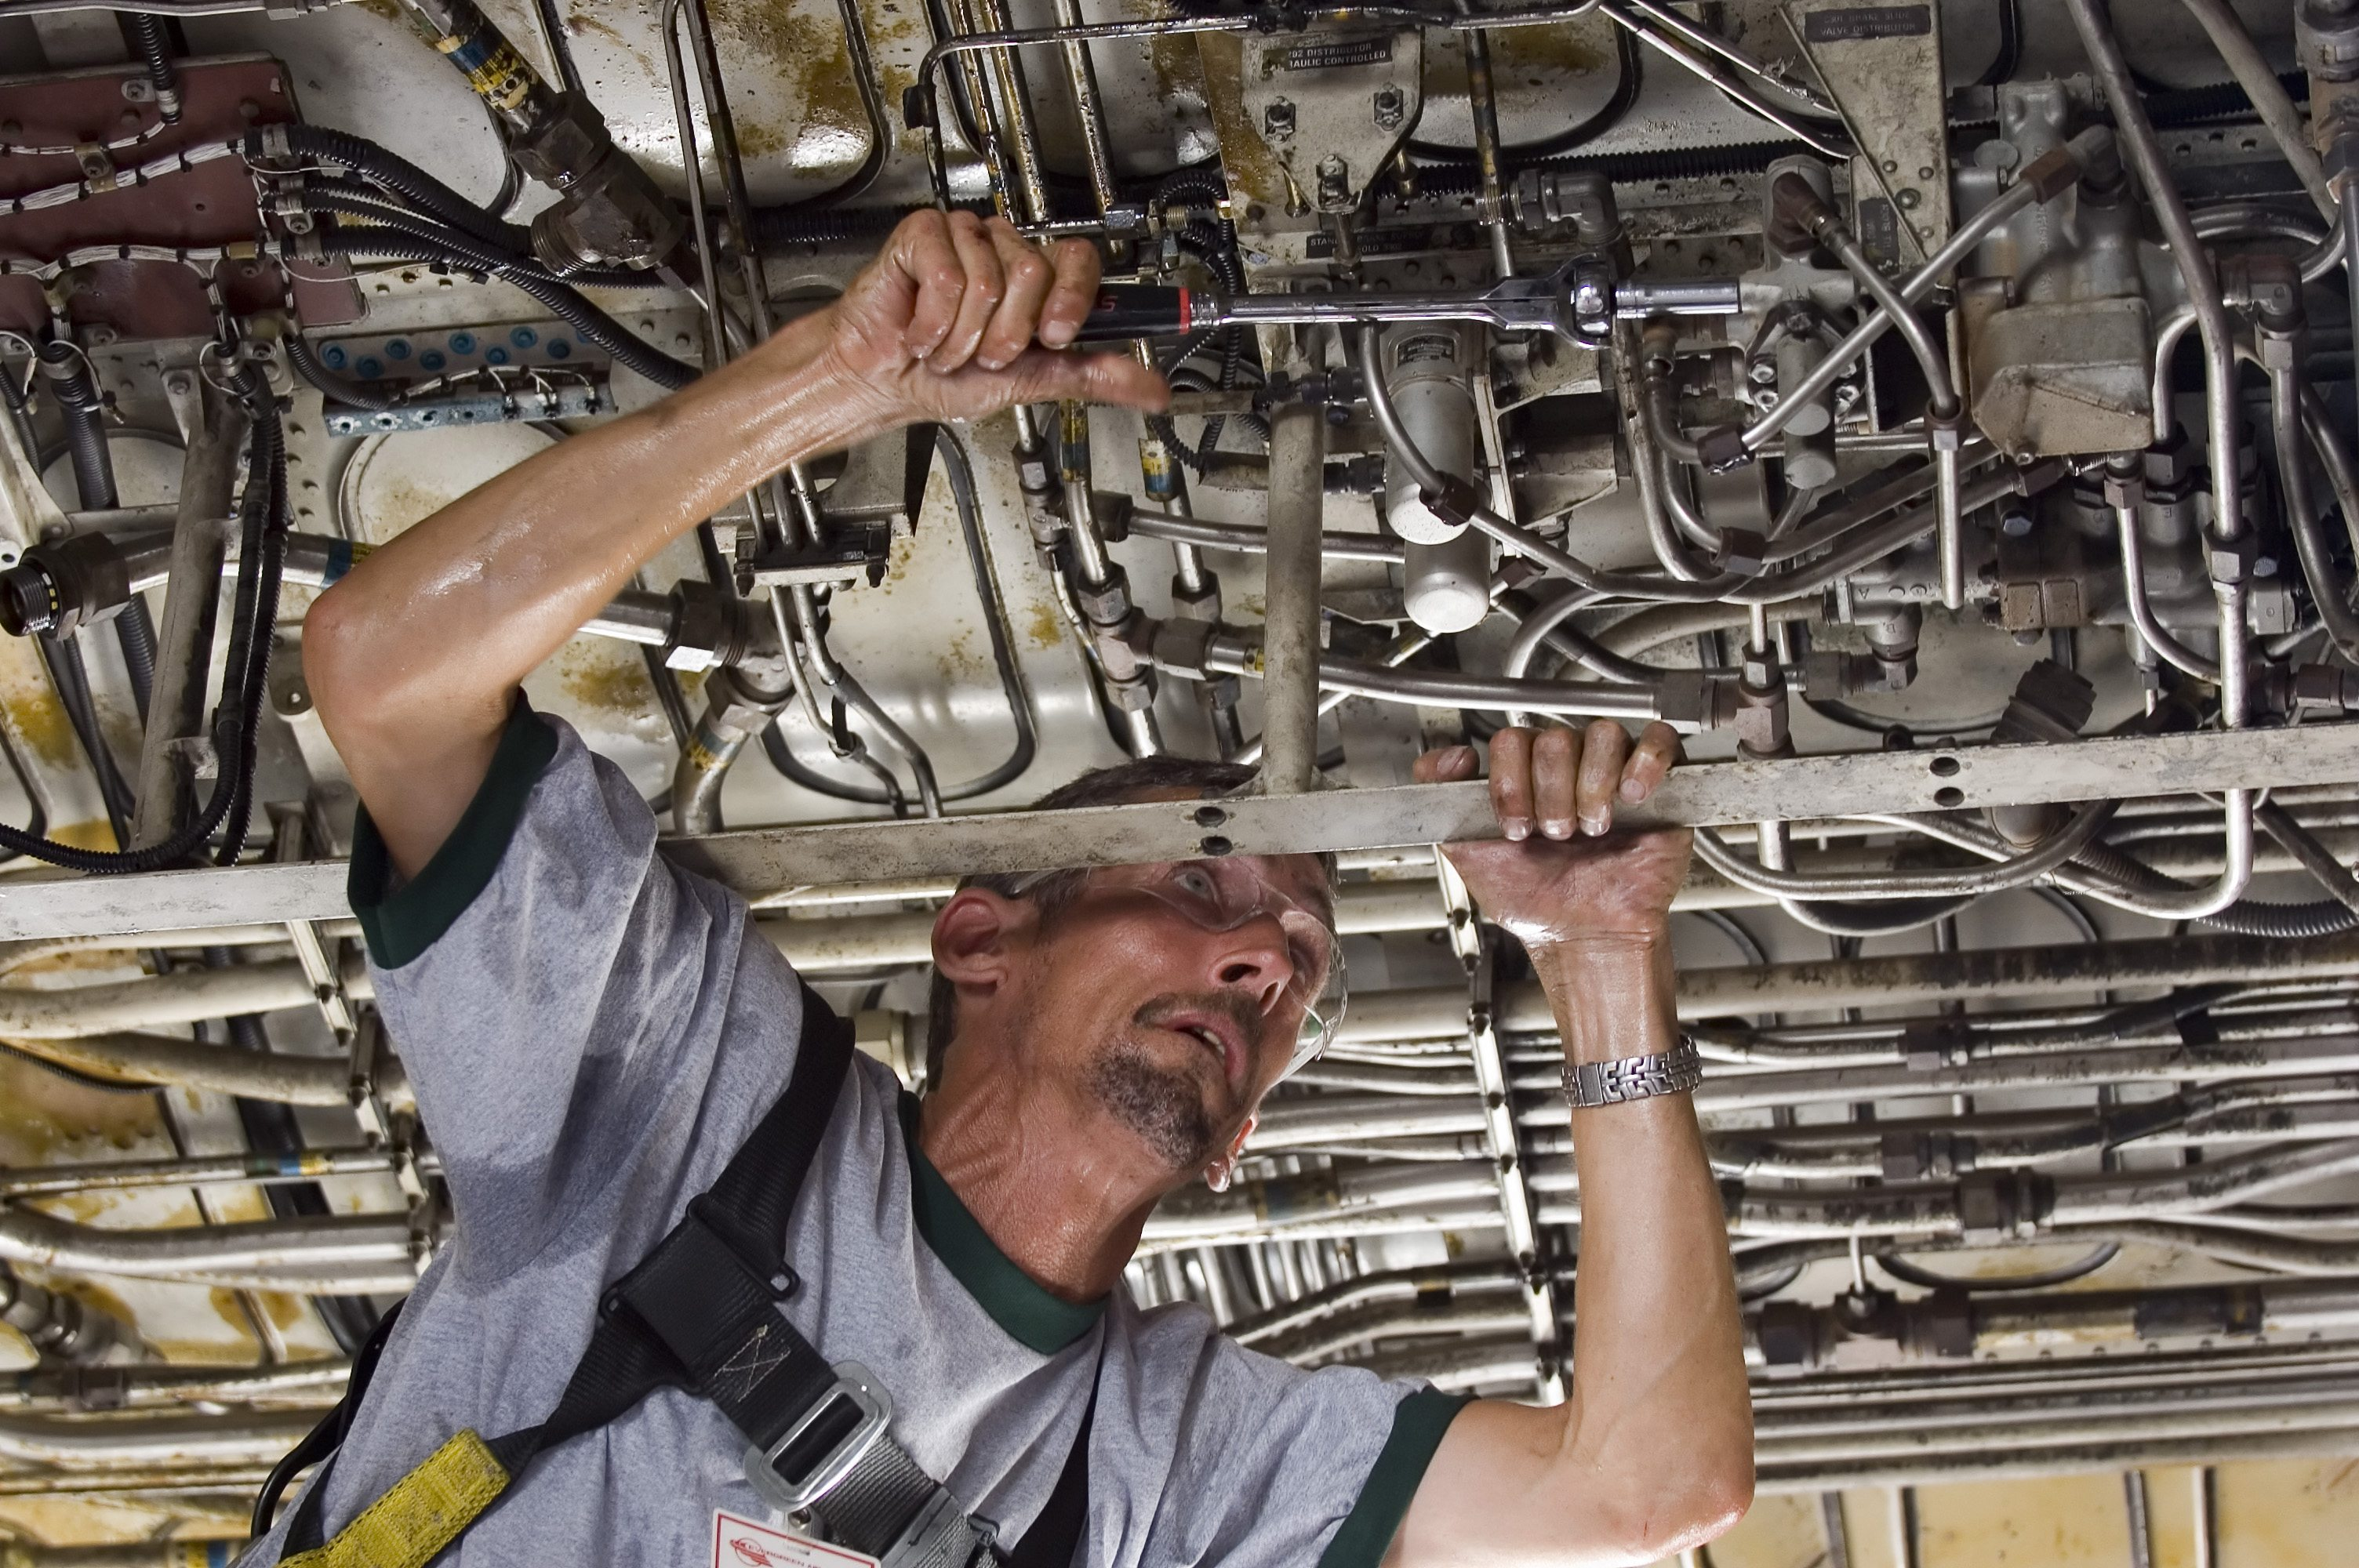 If you love tinkering with pipes and wires, the U.S. job market will have something for you